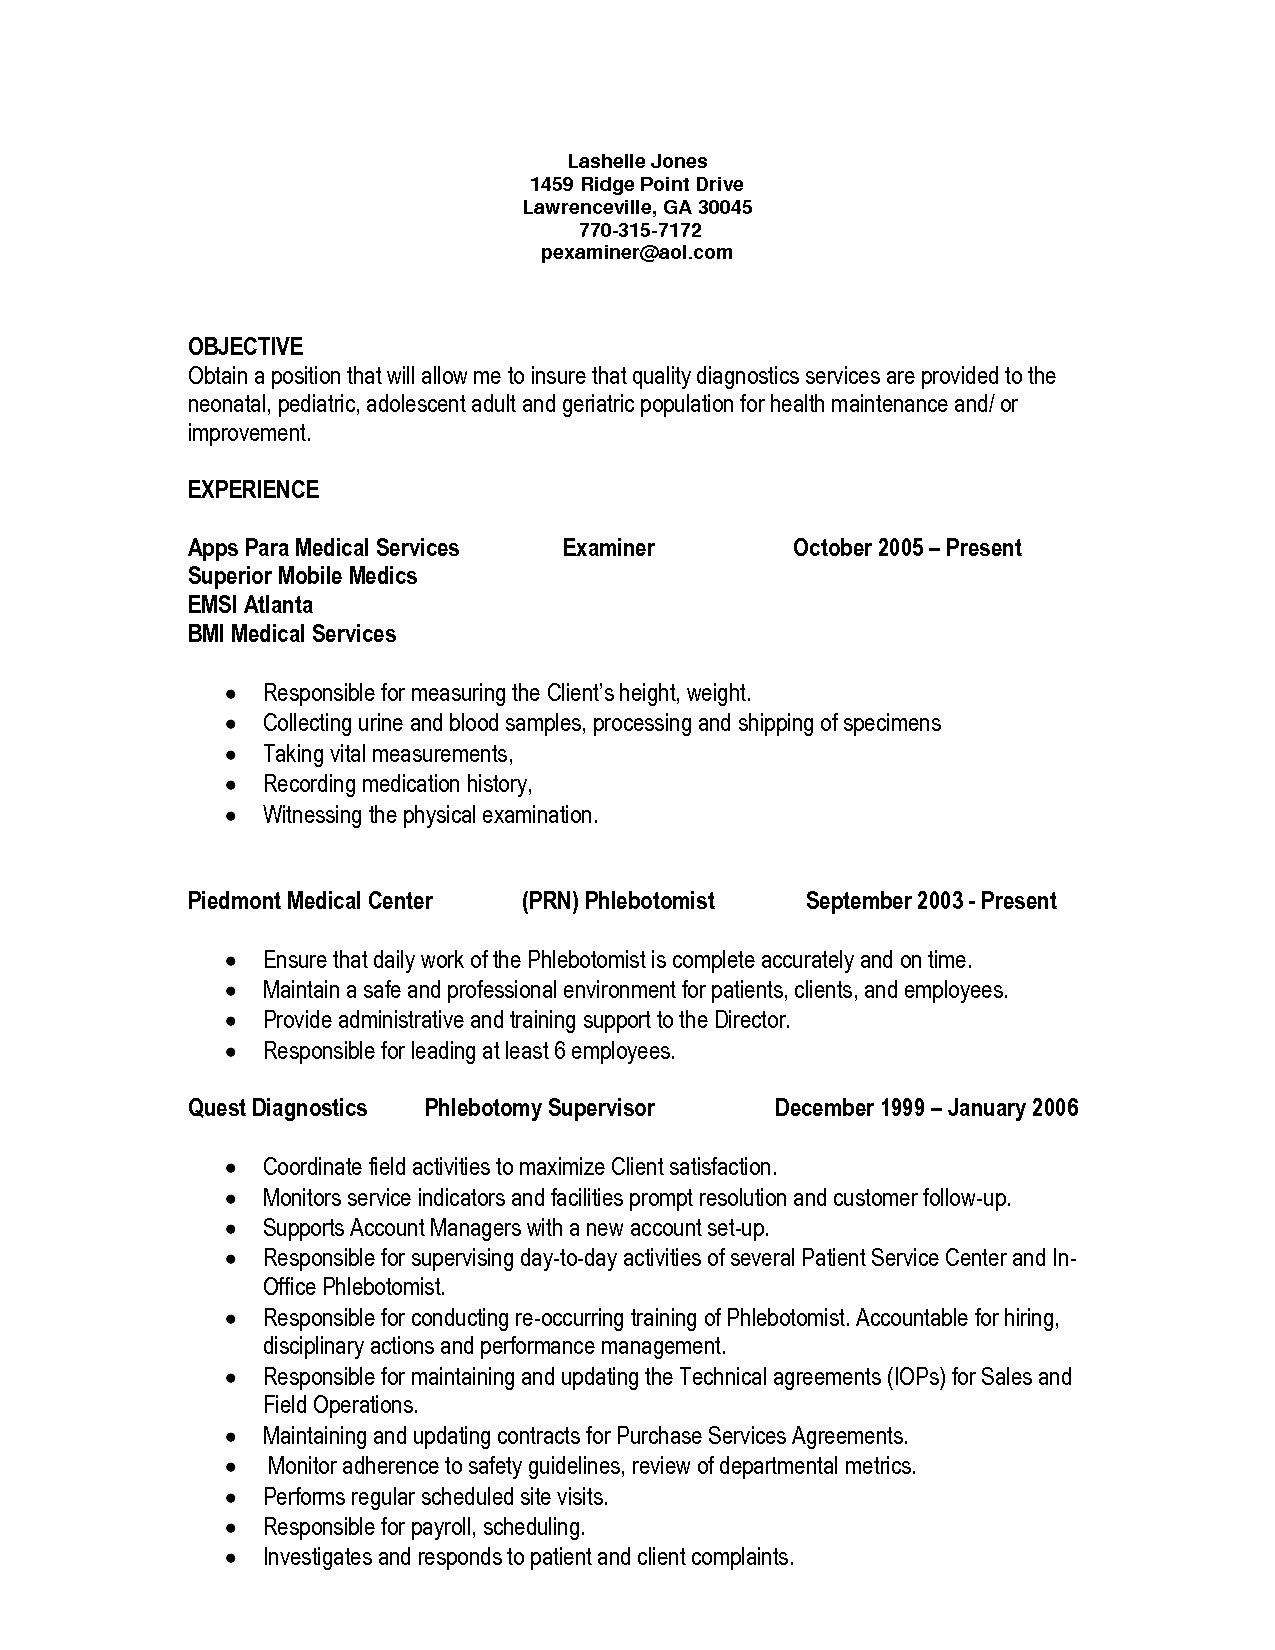 Sample Phlebotomy Resume Impressive Qualifications Resume Phlebotomist Sample Entry Level Phlebotomy .